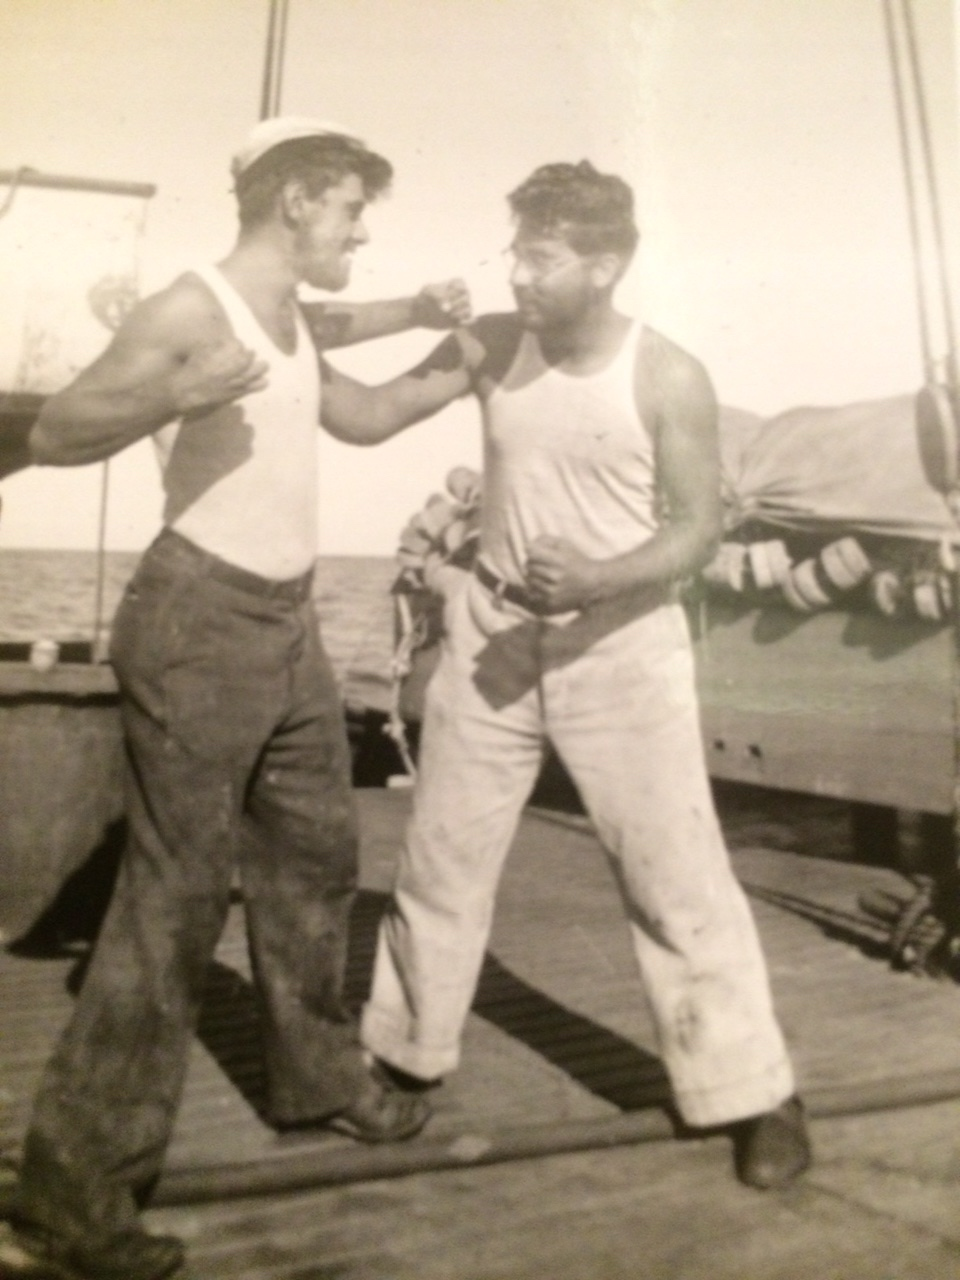 My grandfather on the right, on a fishing boat with a cousin. Possibly taking revenge for the eye?